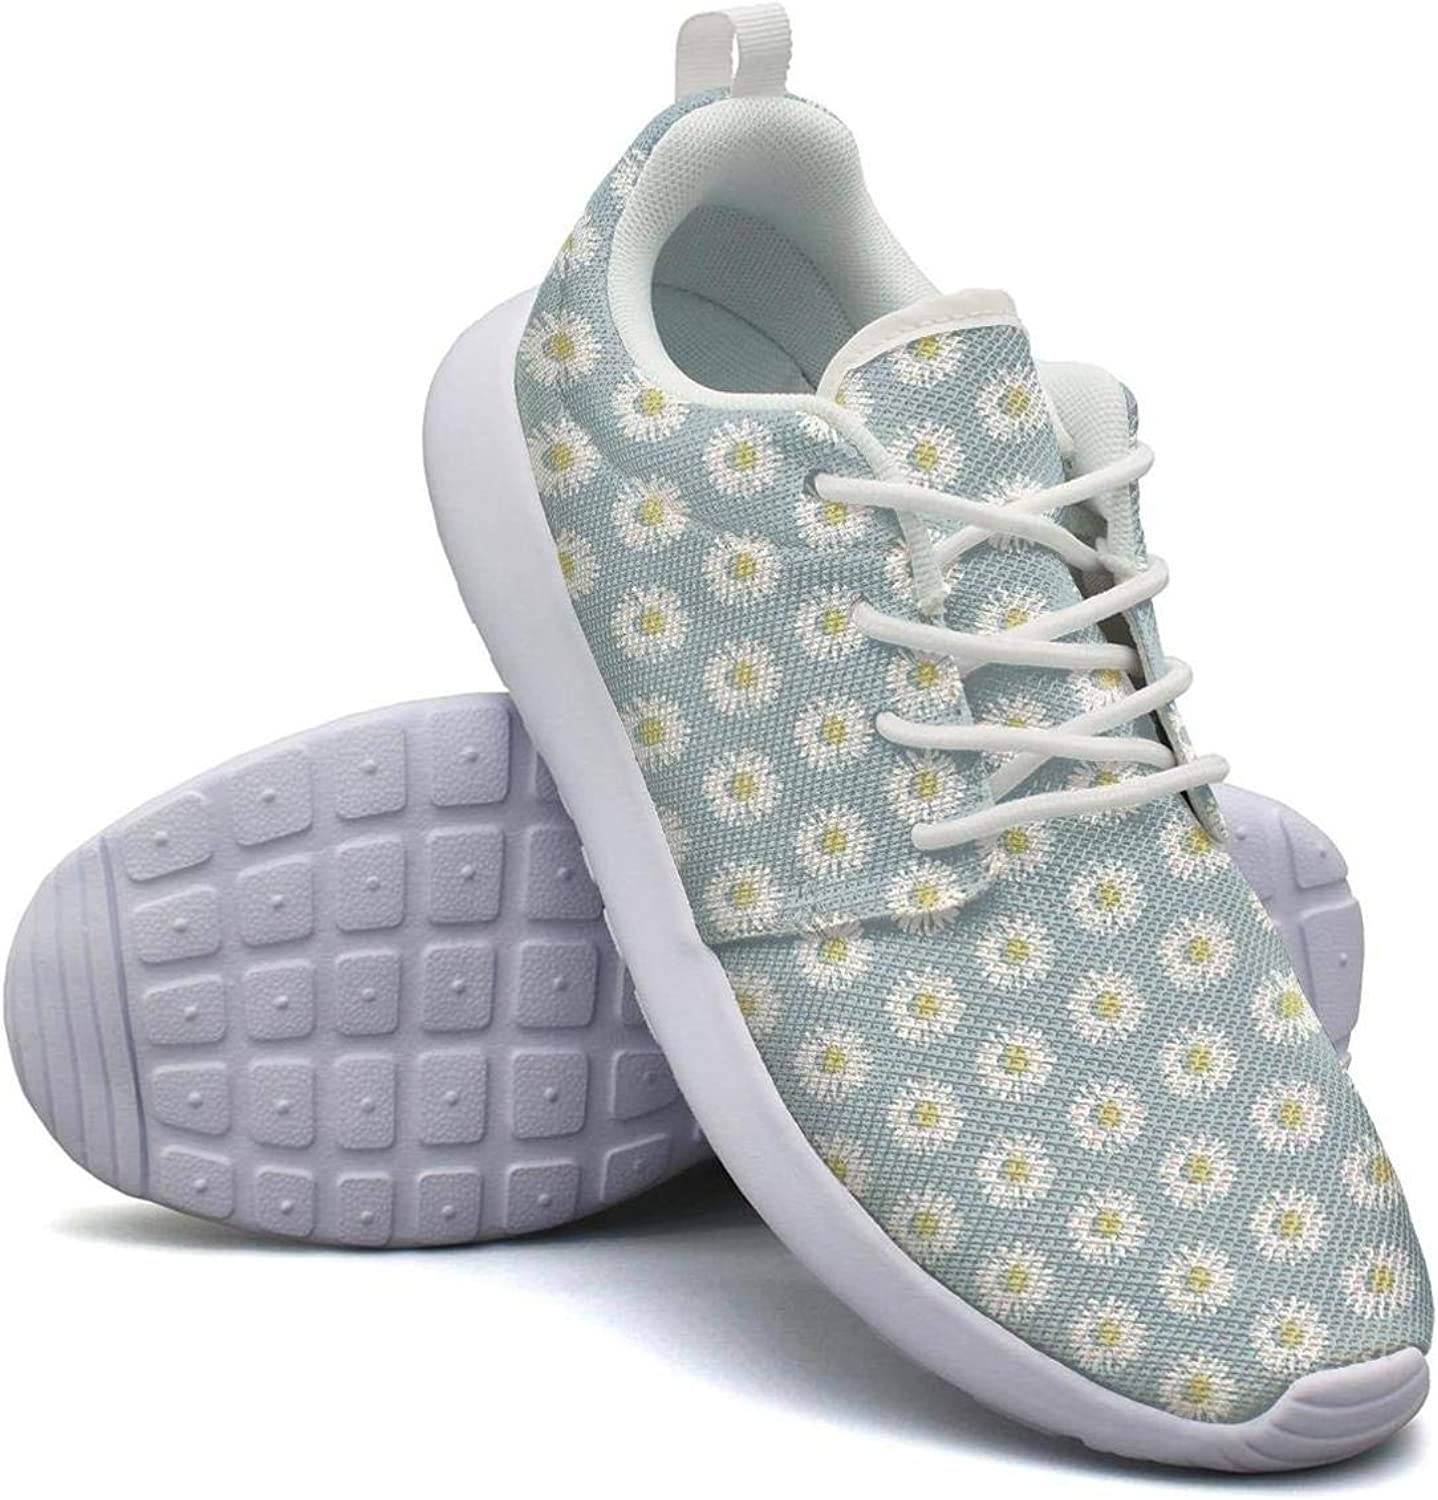 CHALi99 Comfort Female's Lightweight Mesh shoes Daisy Pattern Skybluee Loafers Sport Rubber Sole